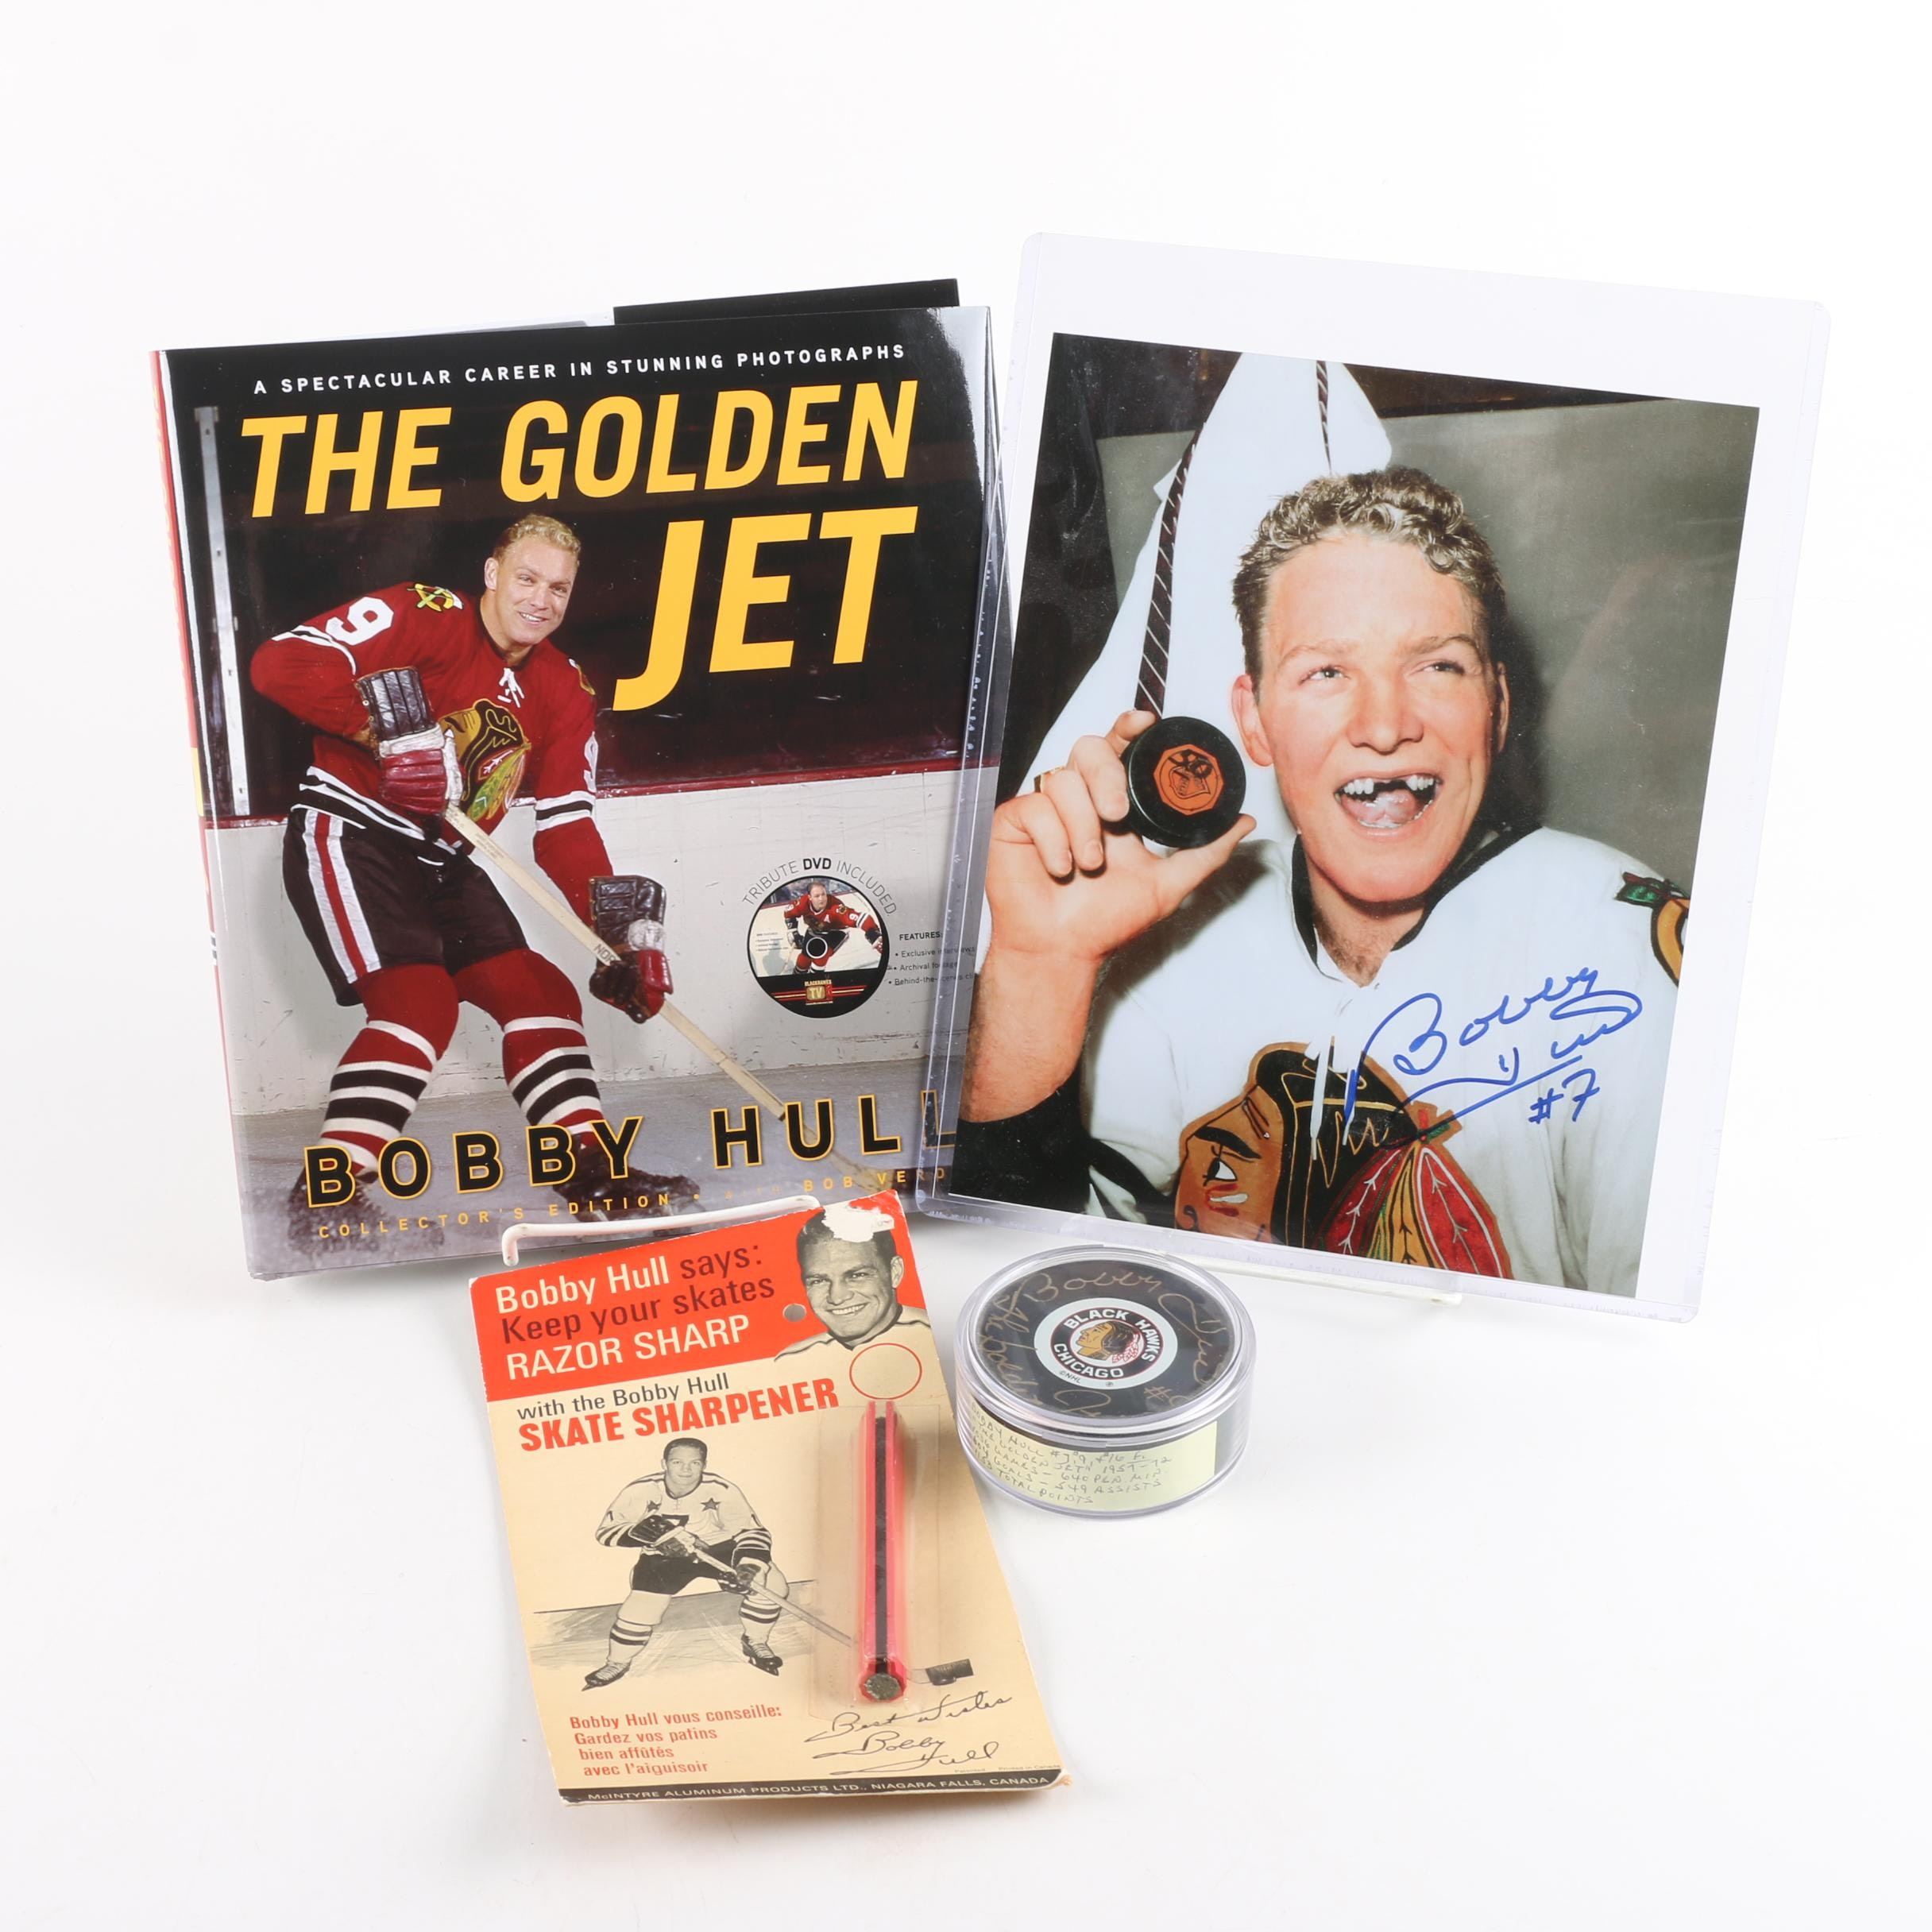 Bobby Hull Autographed Photo and Puck with Book